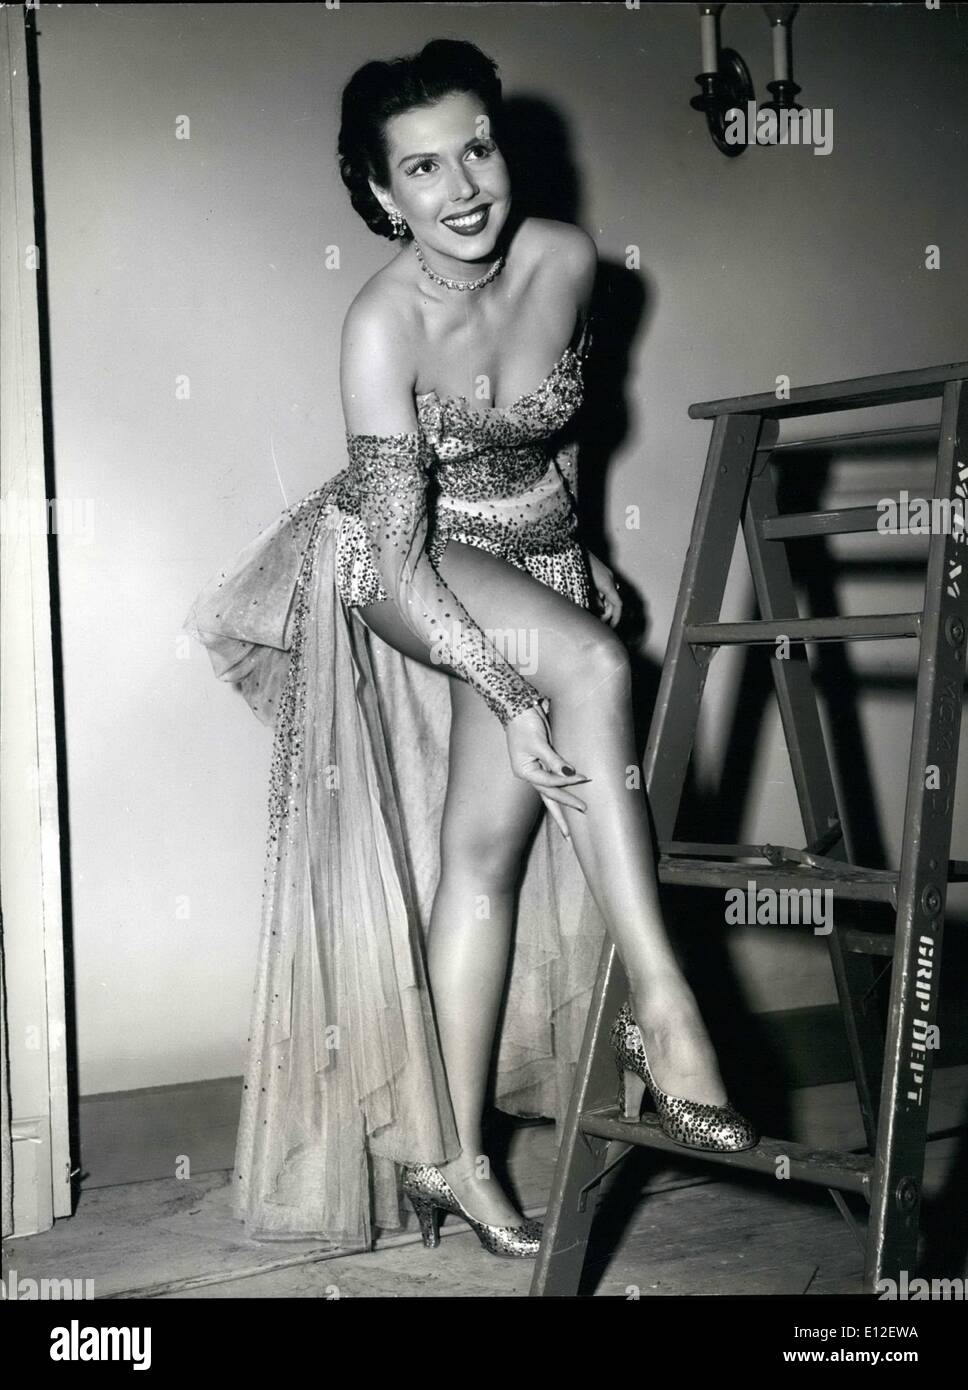 Dec. 21, 2011 - Candid Hollywood. If anyone doubts that Ann Miller has one of the most alluring figures in Hollywood, here's pictorial proof that she has. The dancing lovely is currently busy at work in a new film. - Stock Image